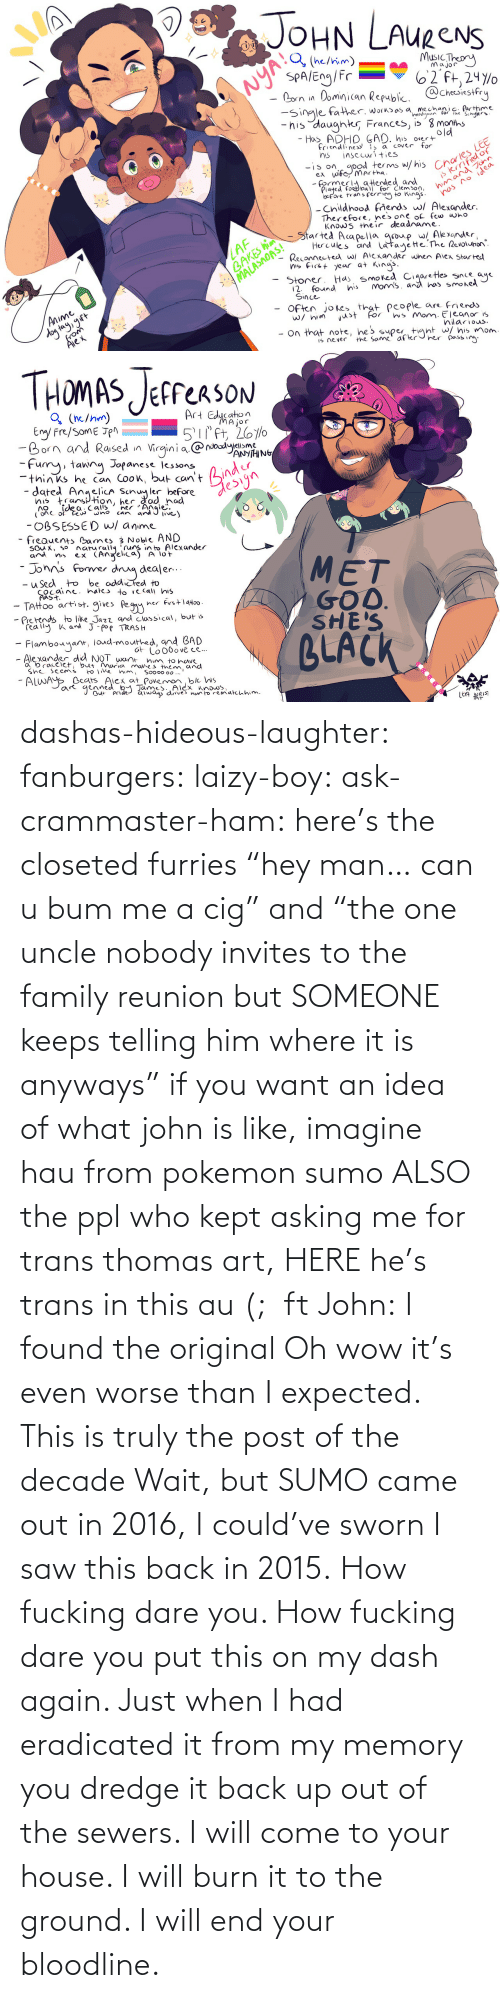 "Family, Pokemon, and Saw: dashas-hideous-laughter:  fanburgers:   laizy-boy:   ask-crammaster-ham:   here's the closeted furries ""hey man… can u bum me a cig"" and ""the one uncle nobody invites to the family reunion but SOMEONE keeps telling him where it is anyways""   if you want an idea of what john is like, imagine hau from pokemon sumo ALSO the ppl who kept asking me for trans thomas art, HERE he's trans in this au (;  ft John:    I found the original     Oh wow it's even worse than I expected. This is truly the post of the decade    Wait, but SUMO came out in 2016, I could've sworn I saw this back in 2015.    How fucking dare you. How fucking dare you put this on my dash again. Just when I had eradicated it from my memory you dredge it back up out of the sewers. I will come to your house. I will burn it to the ground. I will end your bloodline."